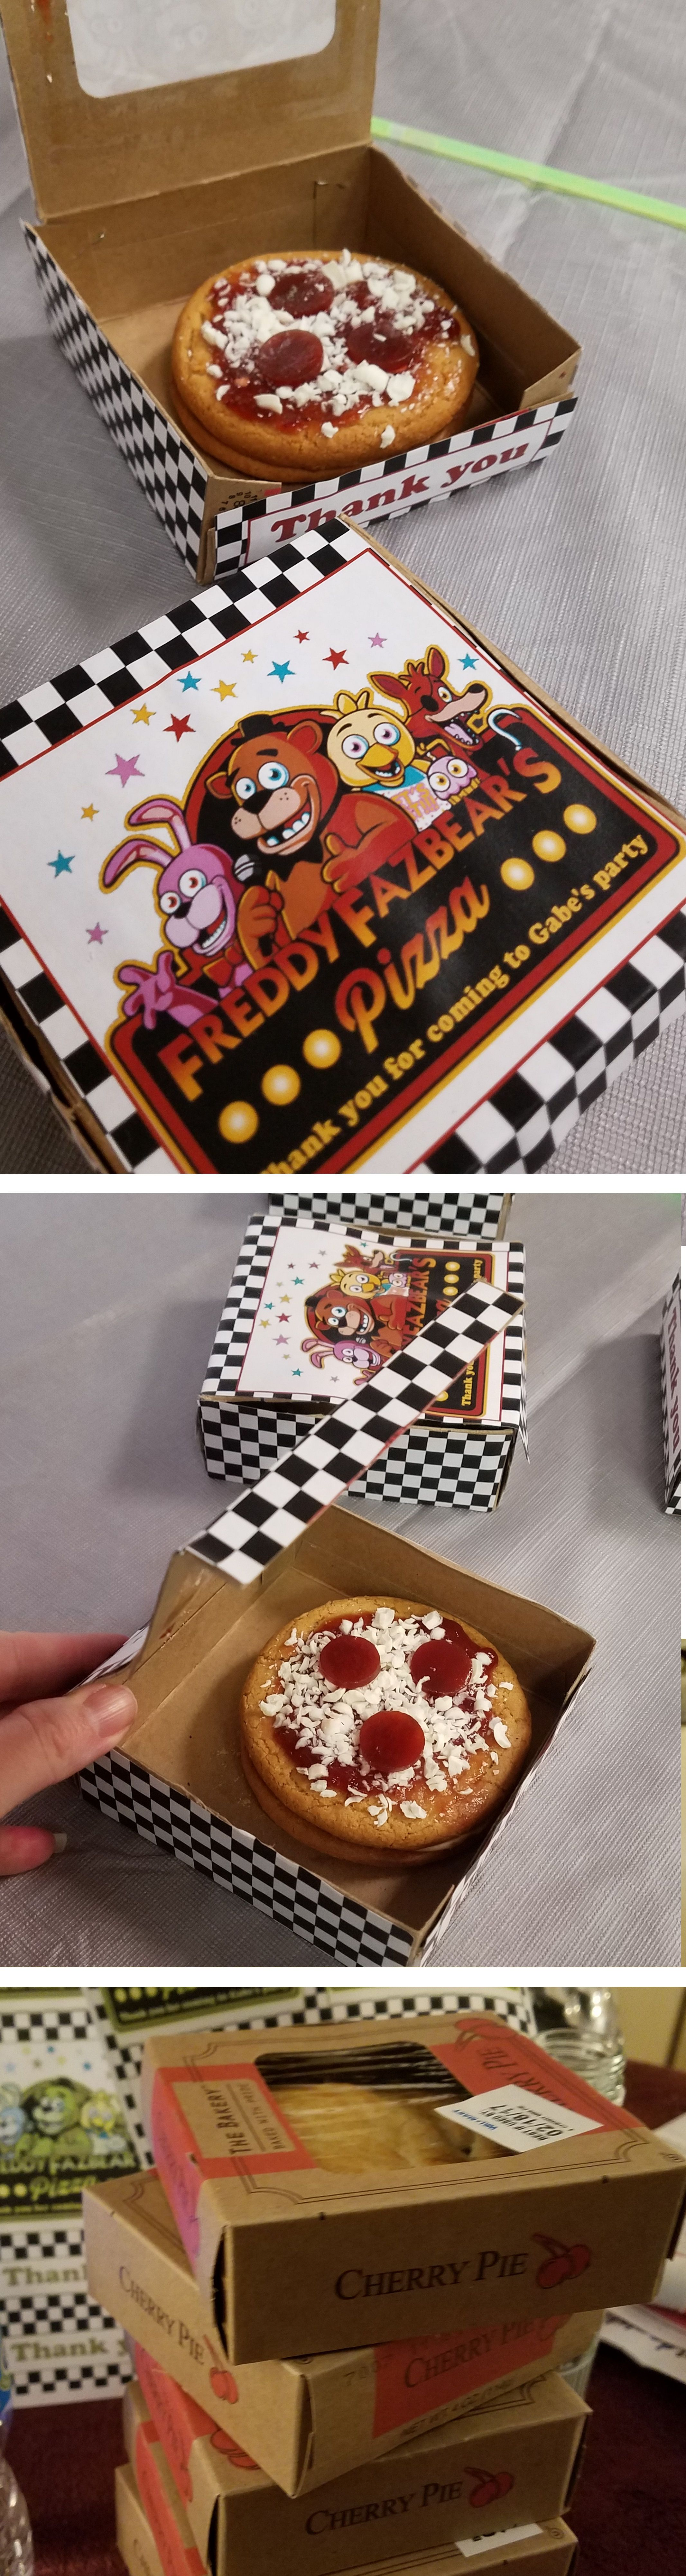 Five nights at Freddy's mini pizza box's. Mini Pizzas made with ...